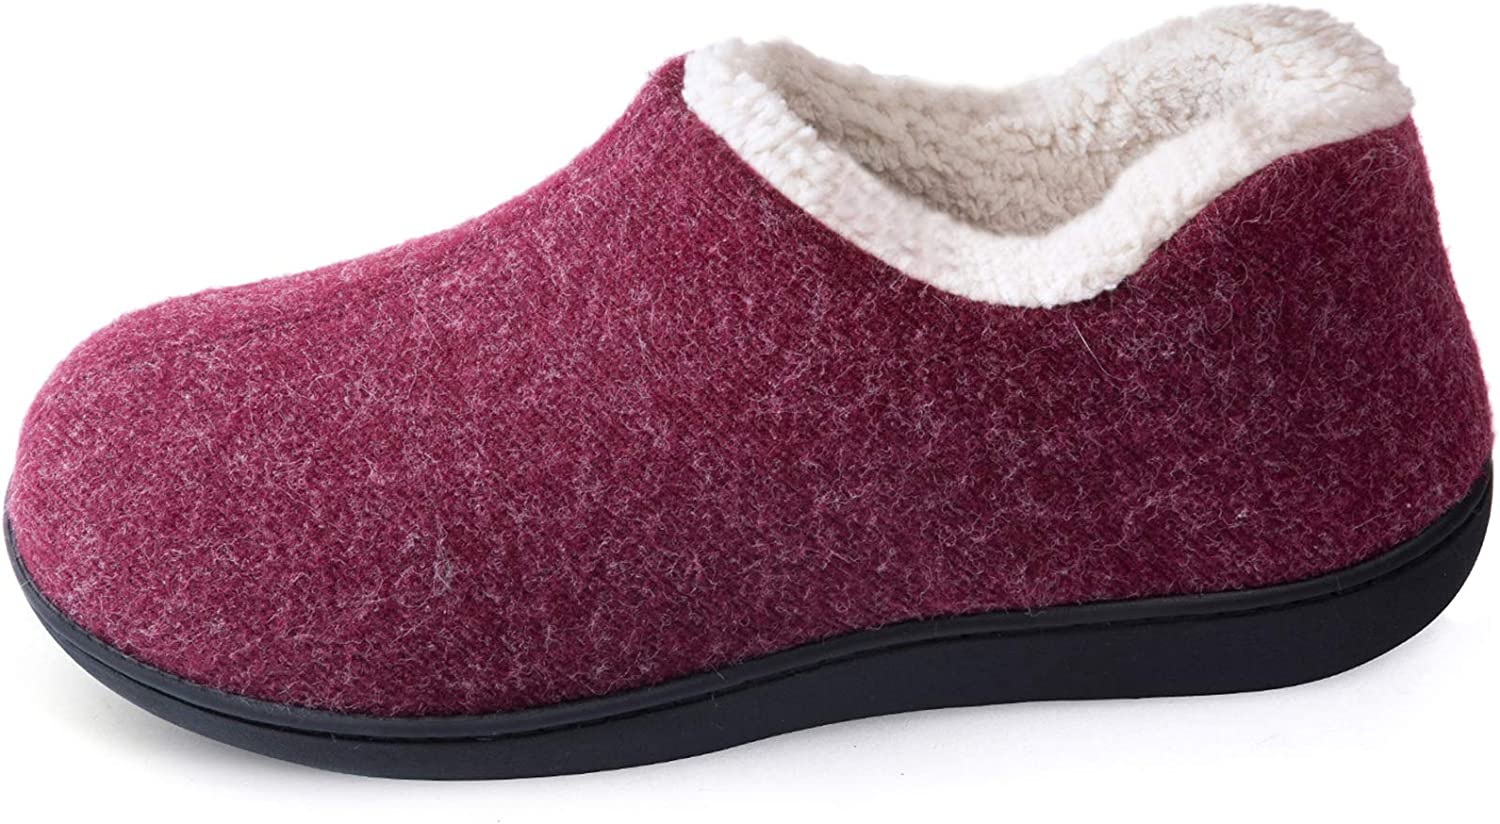 ULTRAIDEAS Women's Cozy Memory Foam Closed Back Slippers with Warm Fleece Lining, Wool-Like Blend Cotton House Shoes with Anti-Slip Indoor Outdoor Rubber Sole